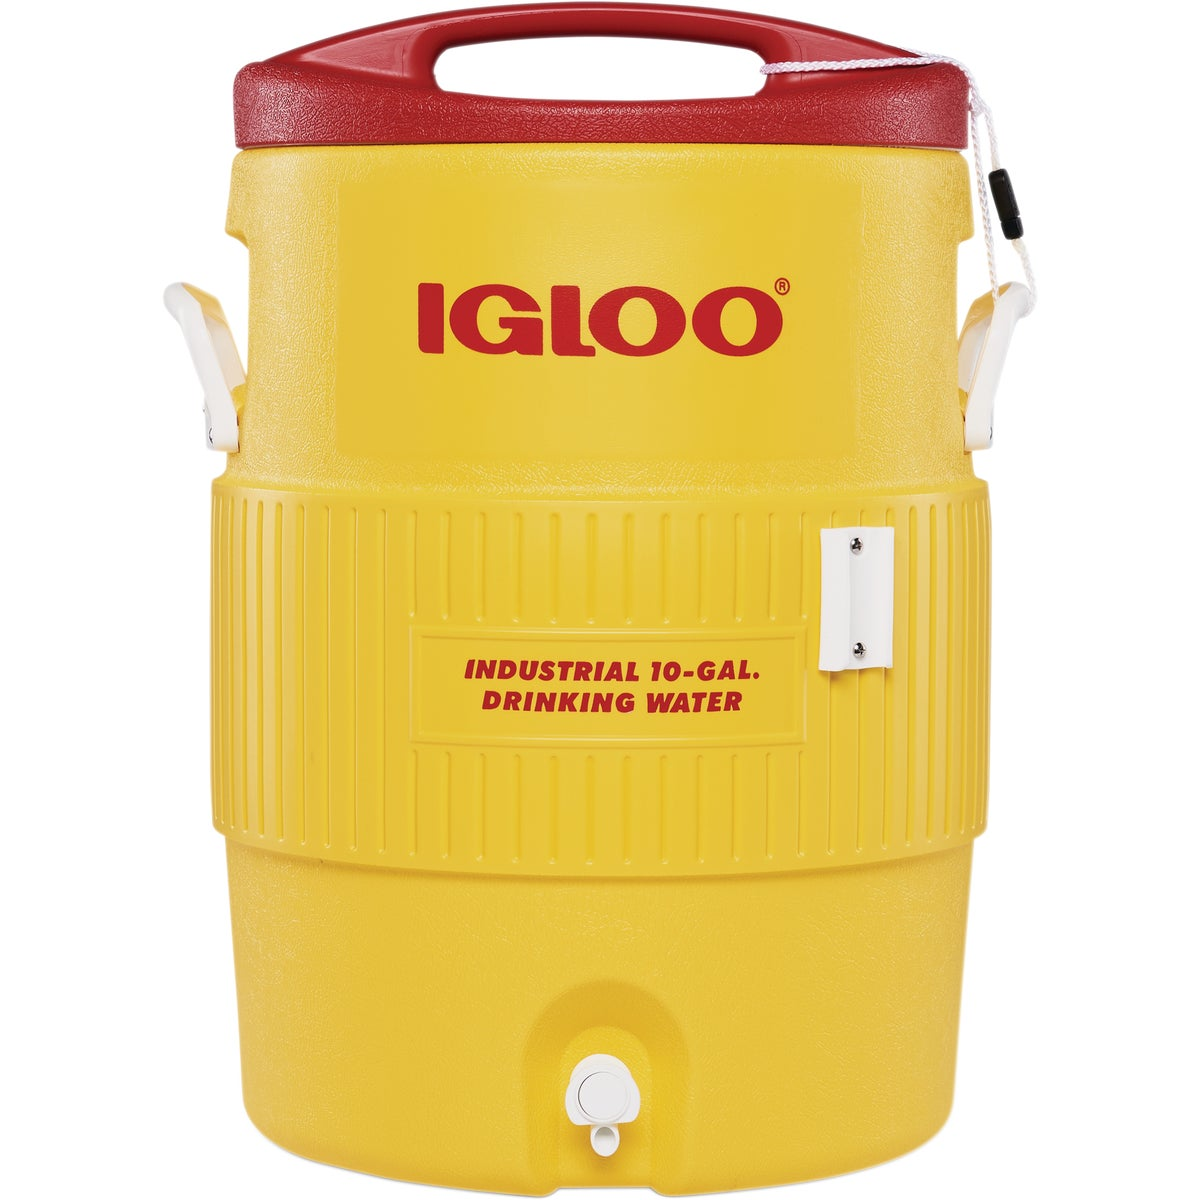 Igloo 10GAL BEVERAGE COOLER 4101